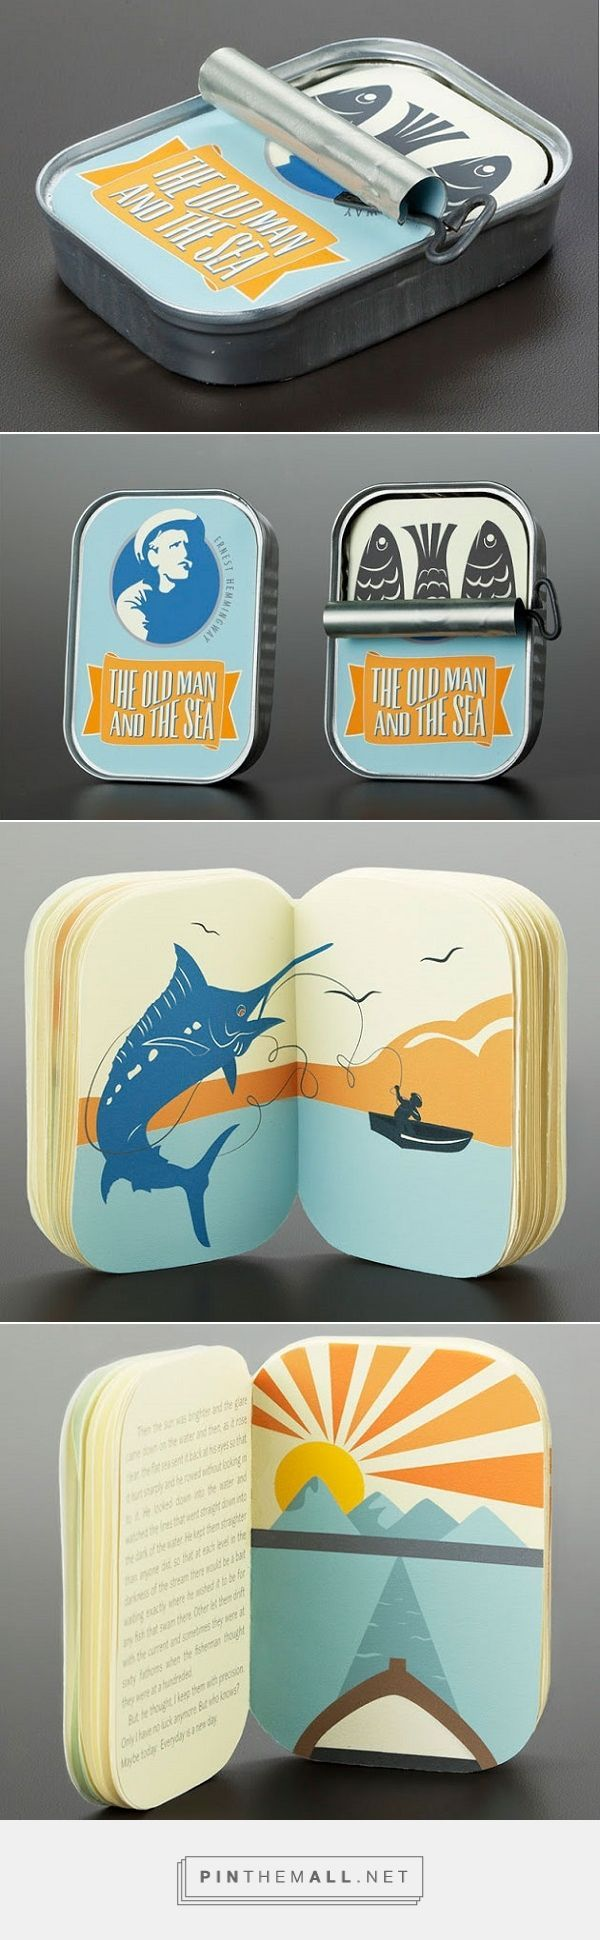 best ideas about old mans old man film old man brilliant tin can packaging for hemingway s classic the old man and the sea